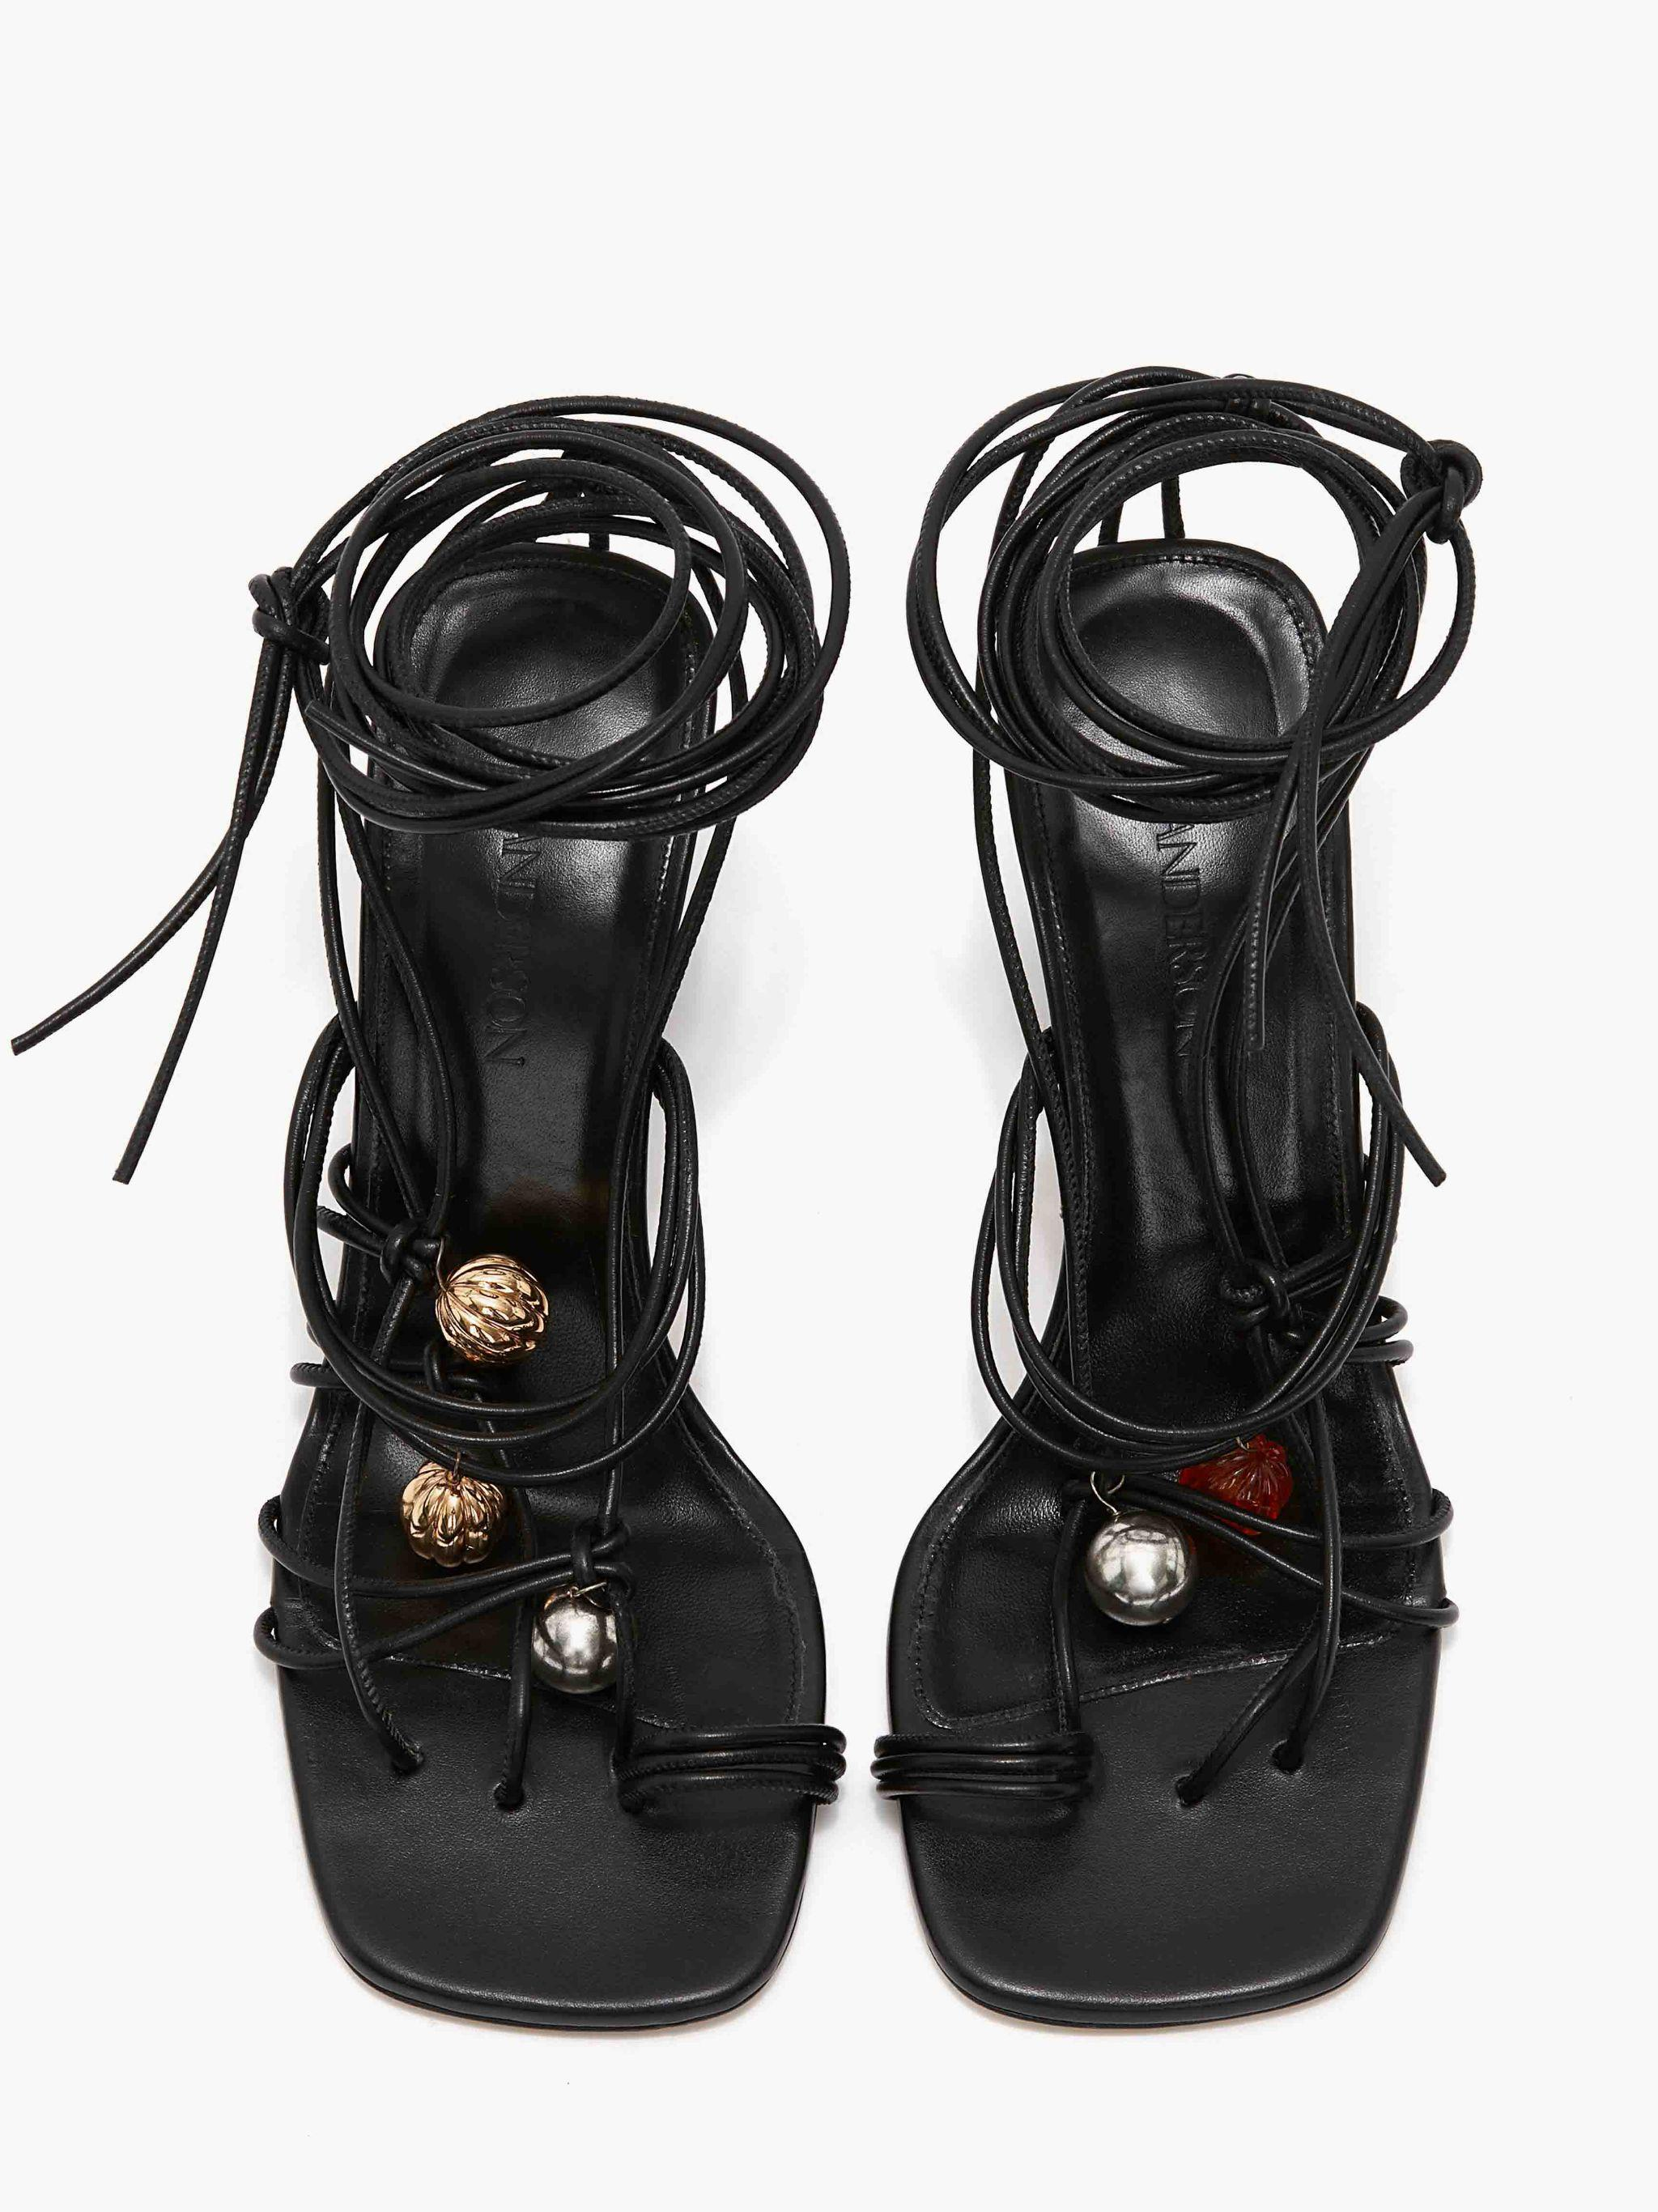 WOMEN'S OPEN LACED HEEL WITH BEADS 3